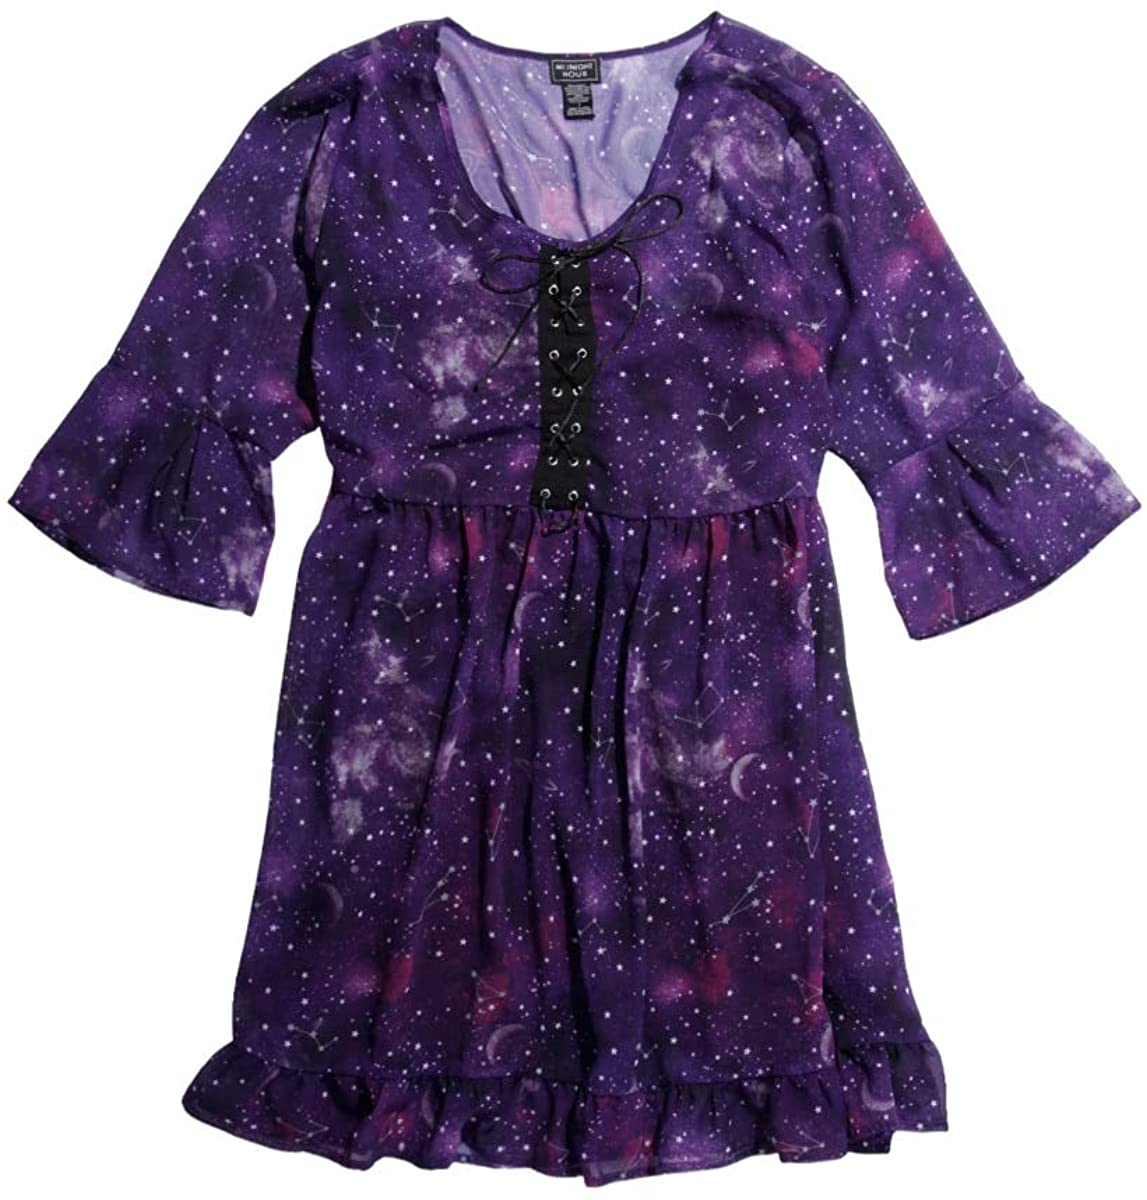 Hot Topic Puple Galaxy Chiffon Dress Plus Size